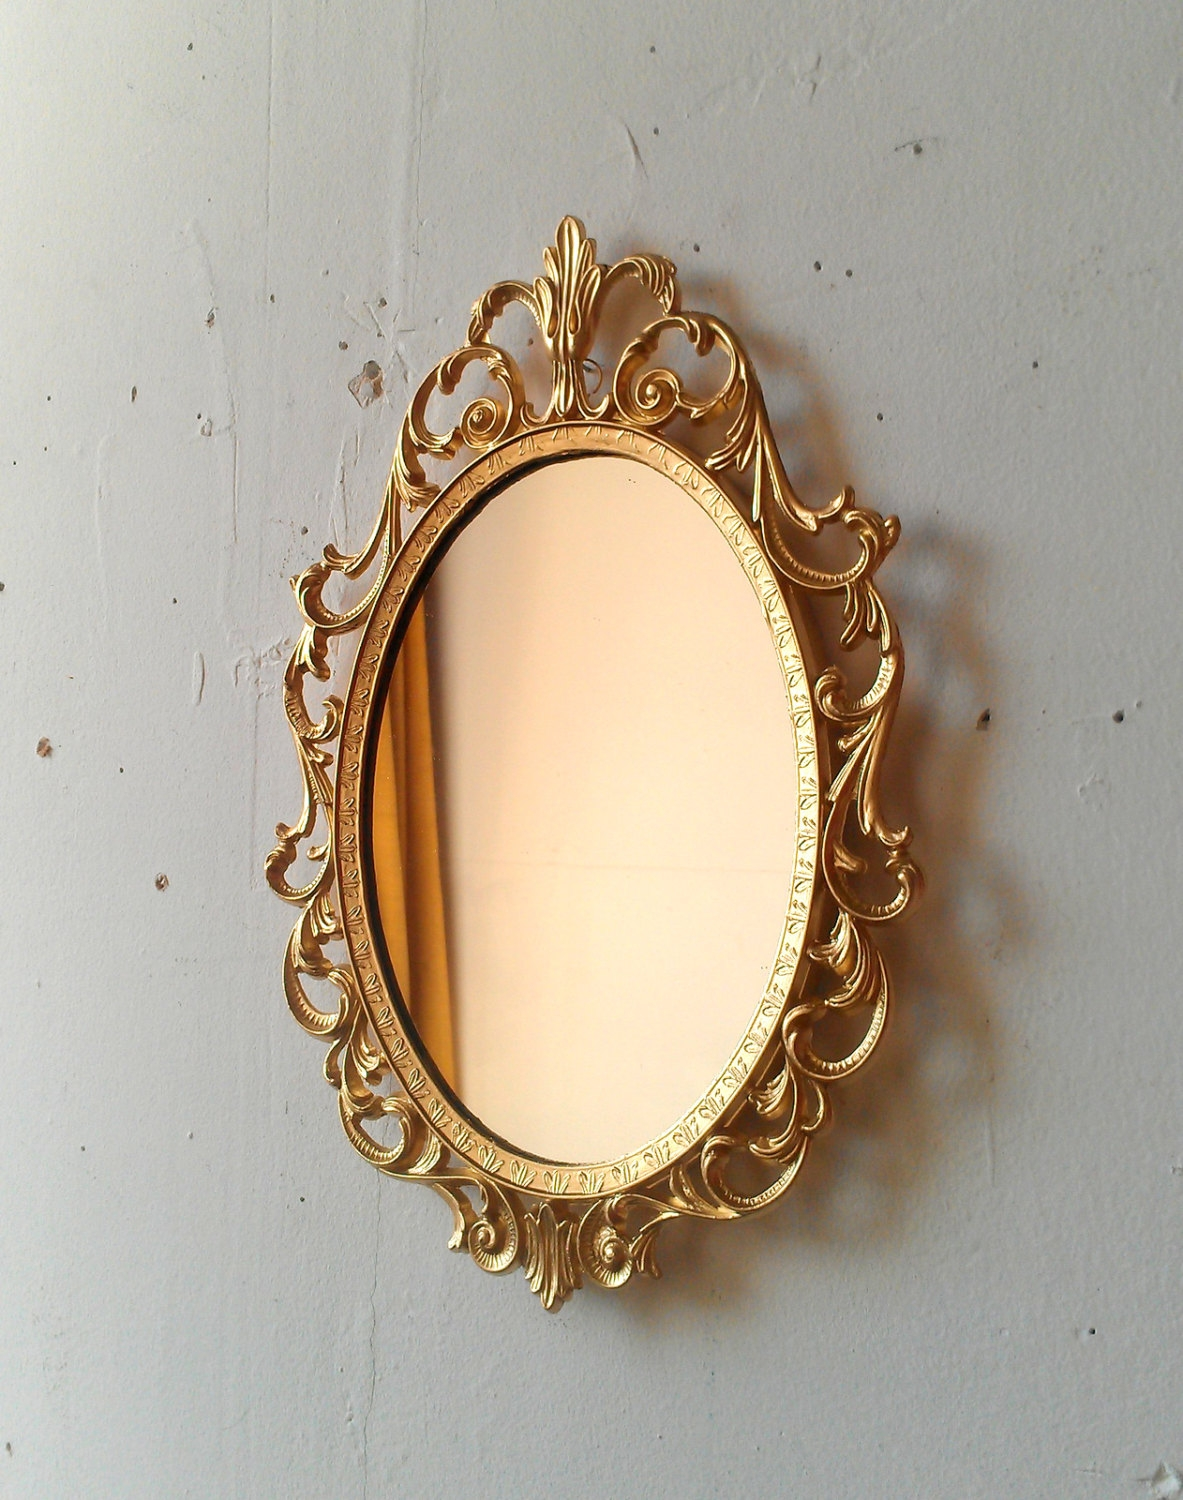 Gold Princess Mirror In Ornate Vintage Oval Frame 10 7 Regarding Small Ornate Mirror (Image 7 of 15)